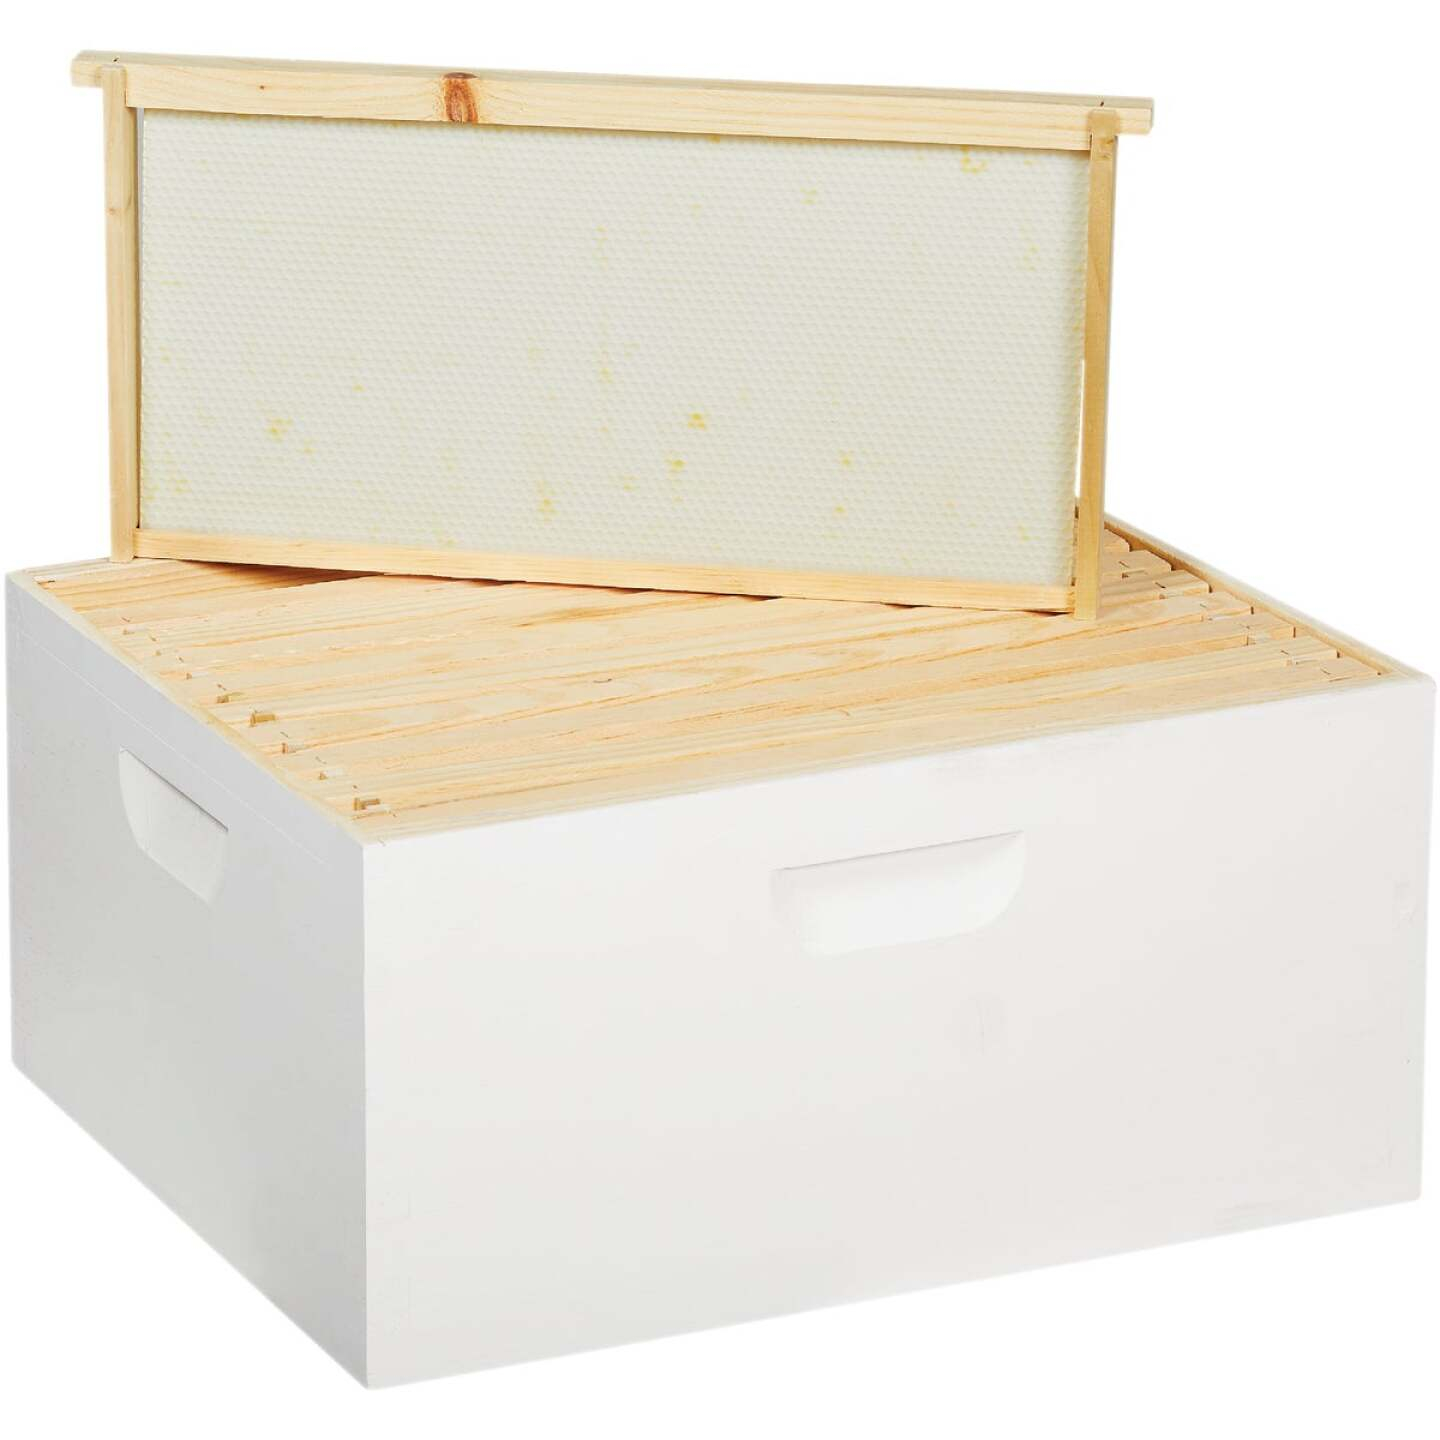 Little Giant 16.25 In. W. x 9.5 In. H.x 19.875 In. L. Assembled Deep Beehive, 10 Frames Image 1